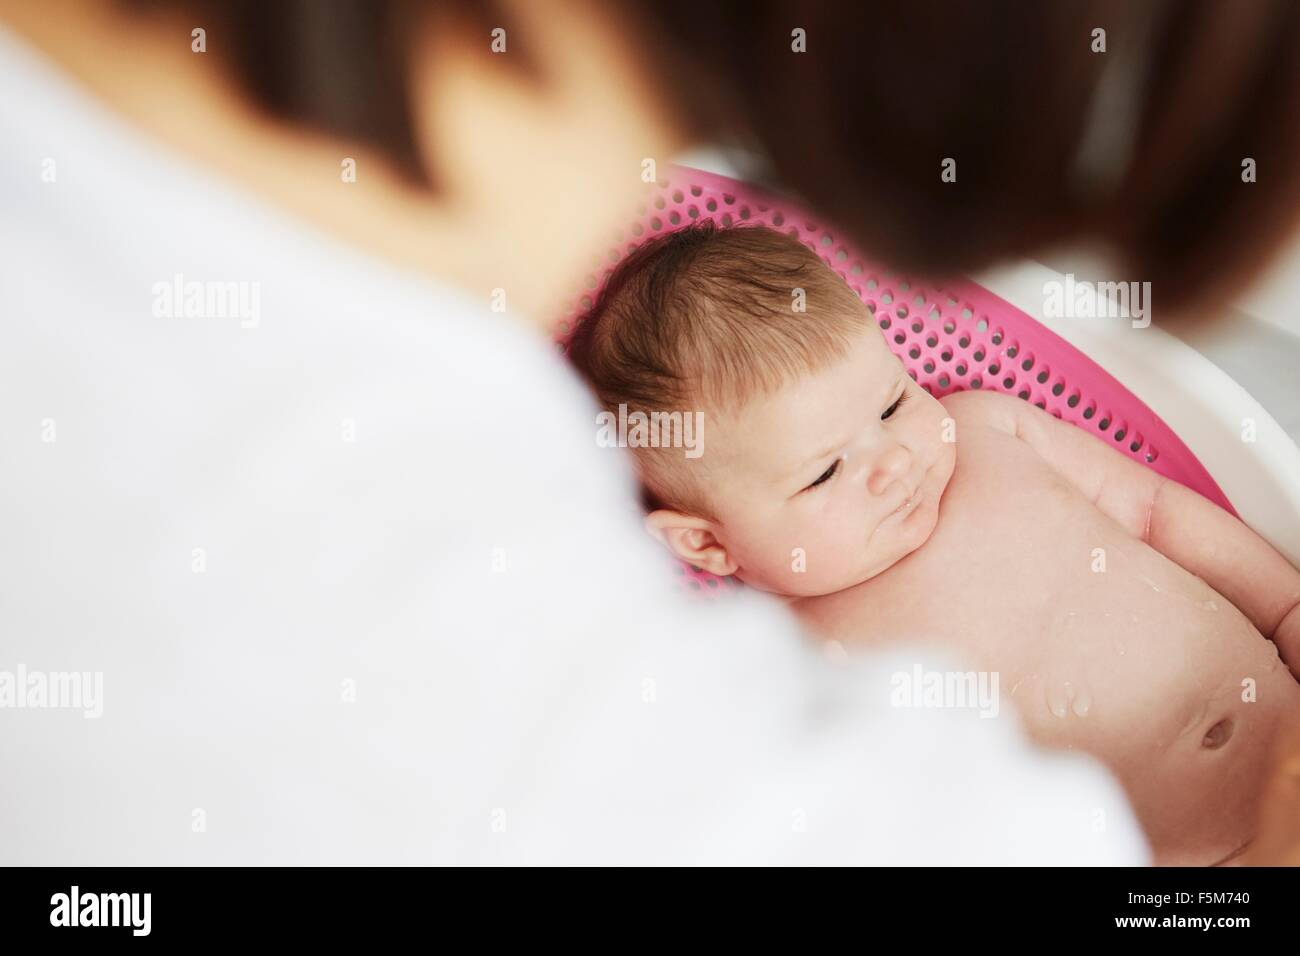 Baby lying in bouncer - Stock Image